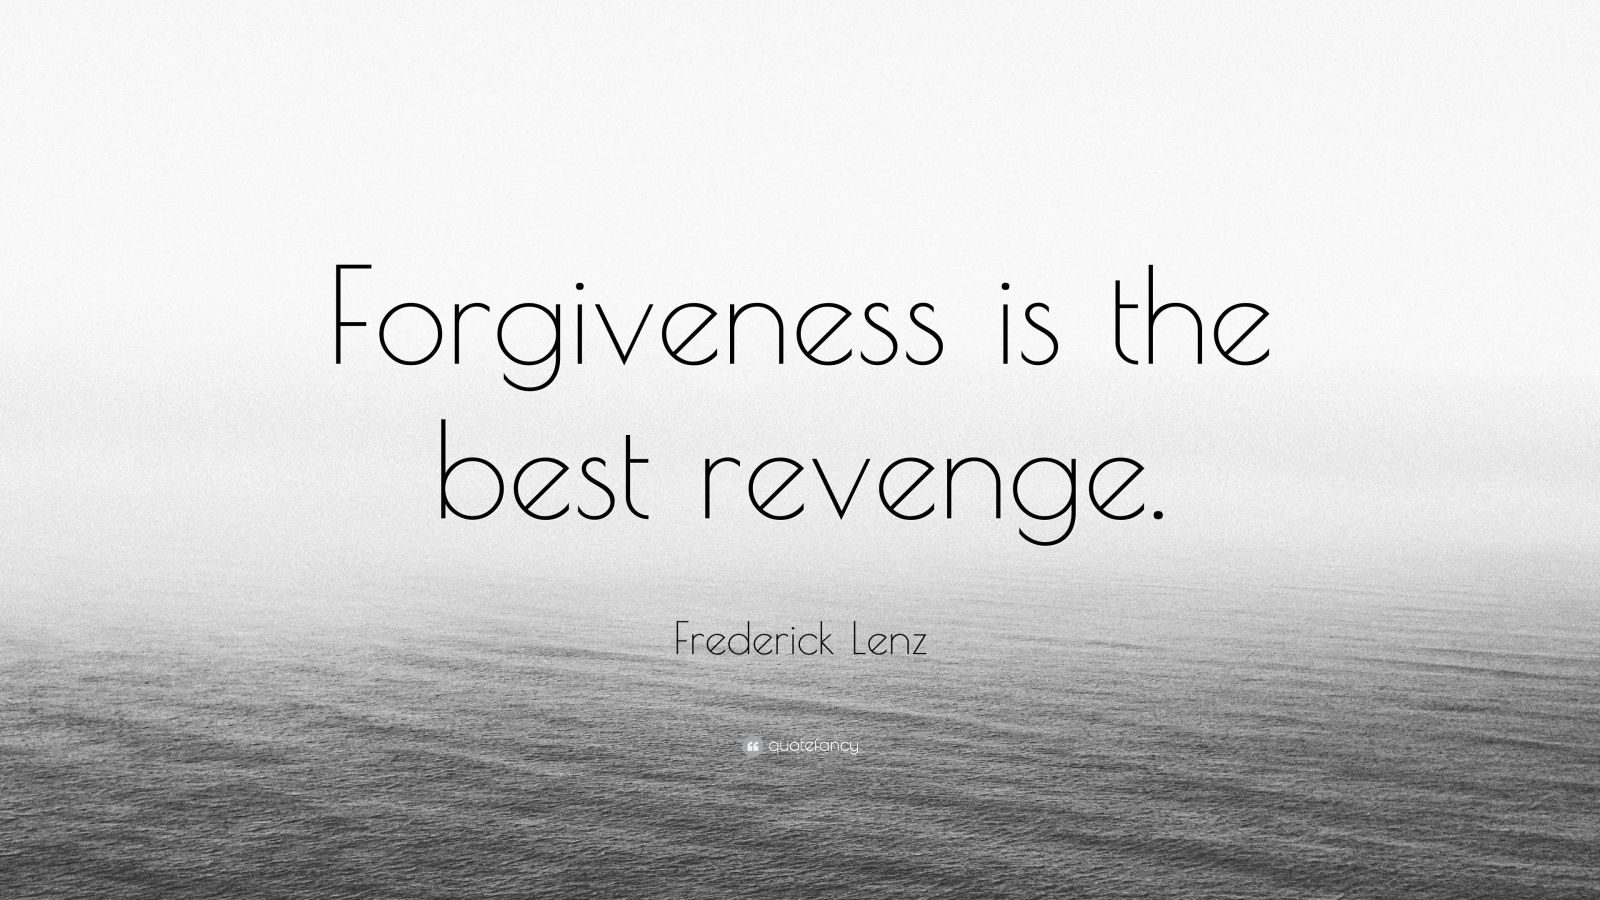 essay on forgiveness is the best revenge Forgiveness is the best revenge an eye for an eye and a tooth for a tooth is the strategy that shoots across our minds when the fire of revenge burns within us.